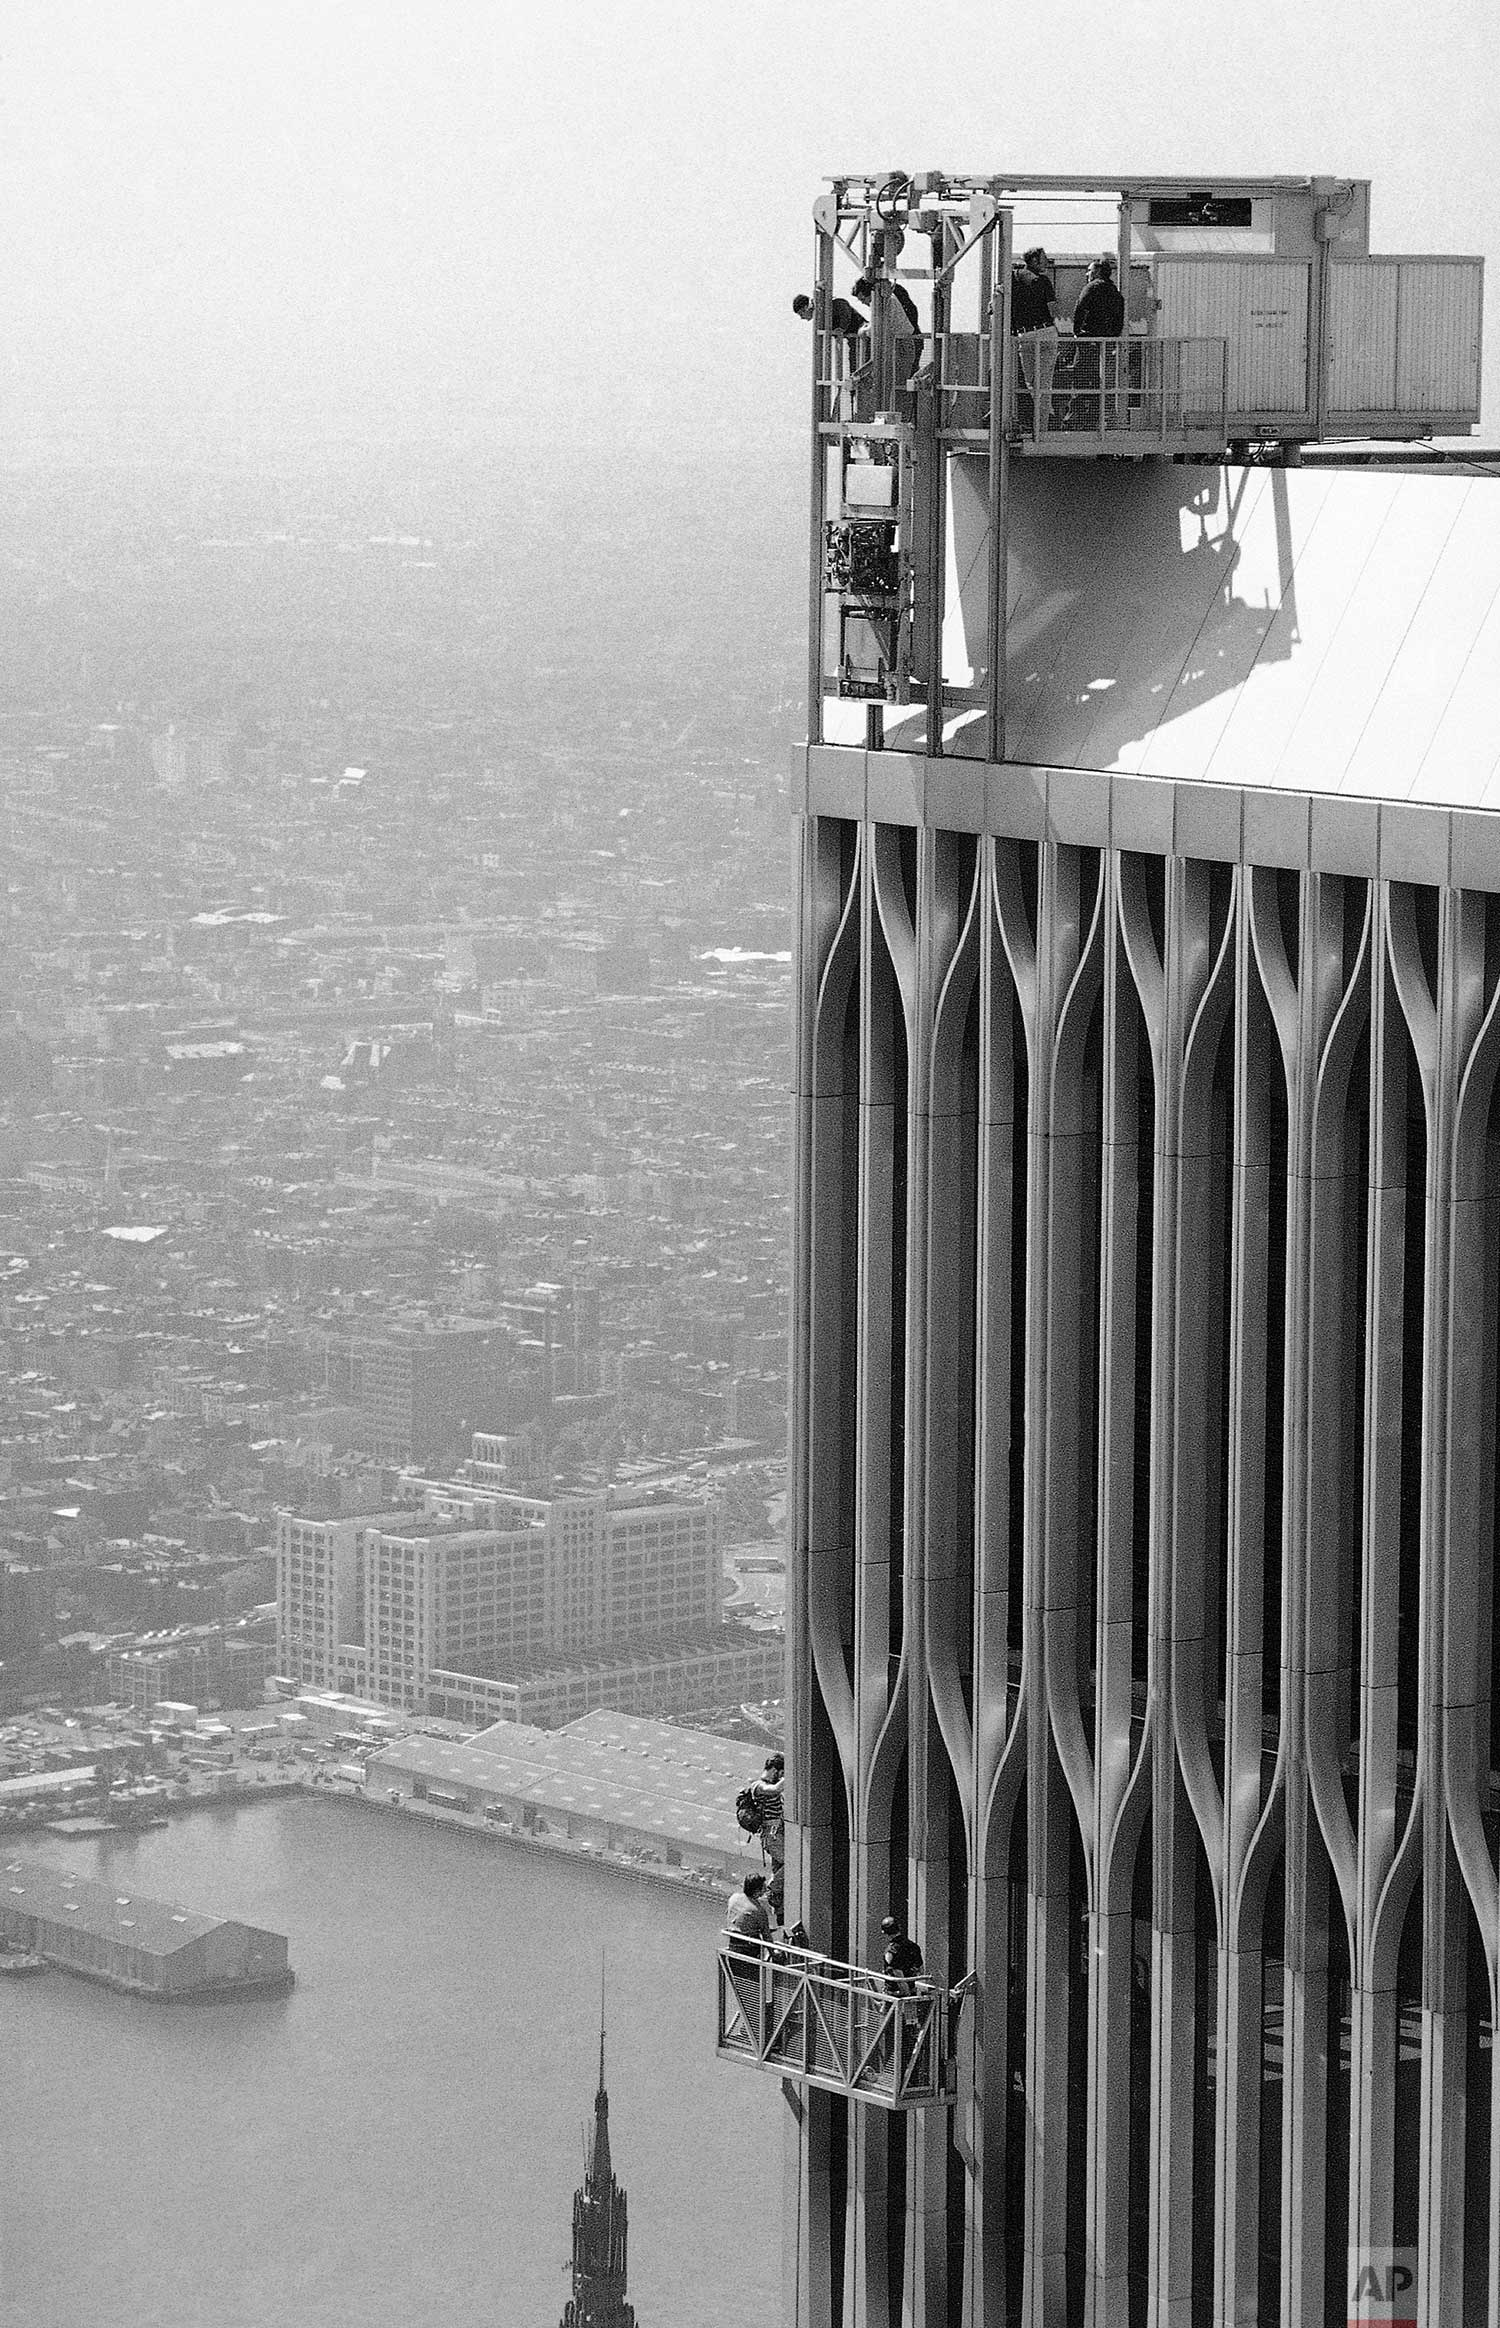 George Willig scales the World Trade Center tower as police follow him on a window washer's platform in New York, May 26, 1977. (AP Photo/Bob Eberle)